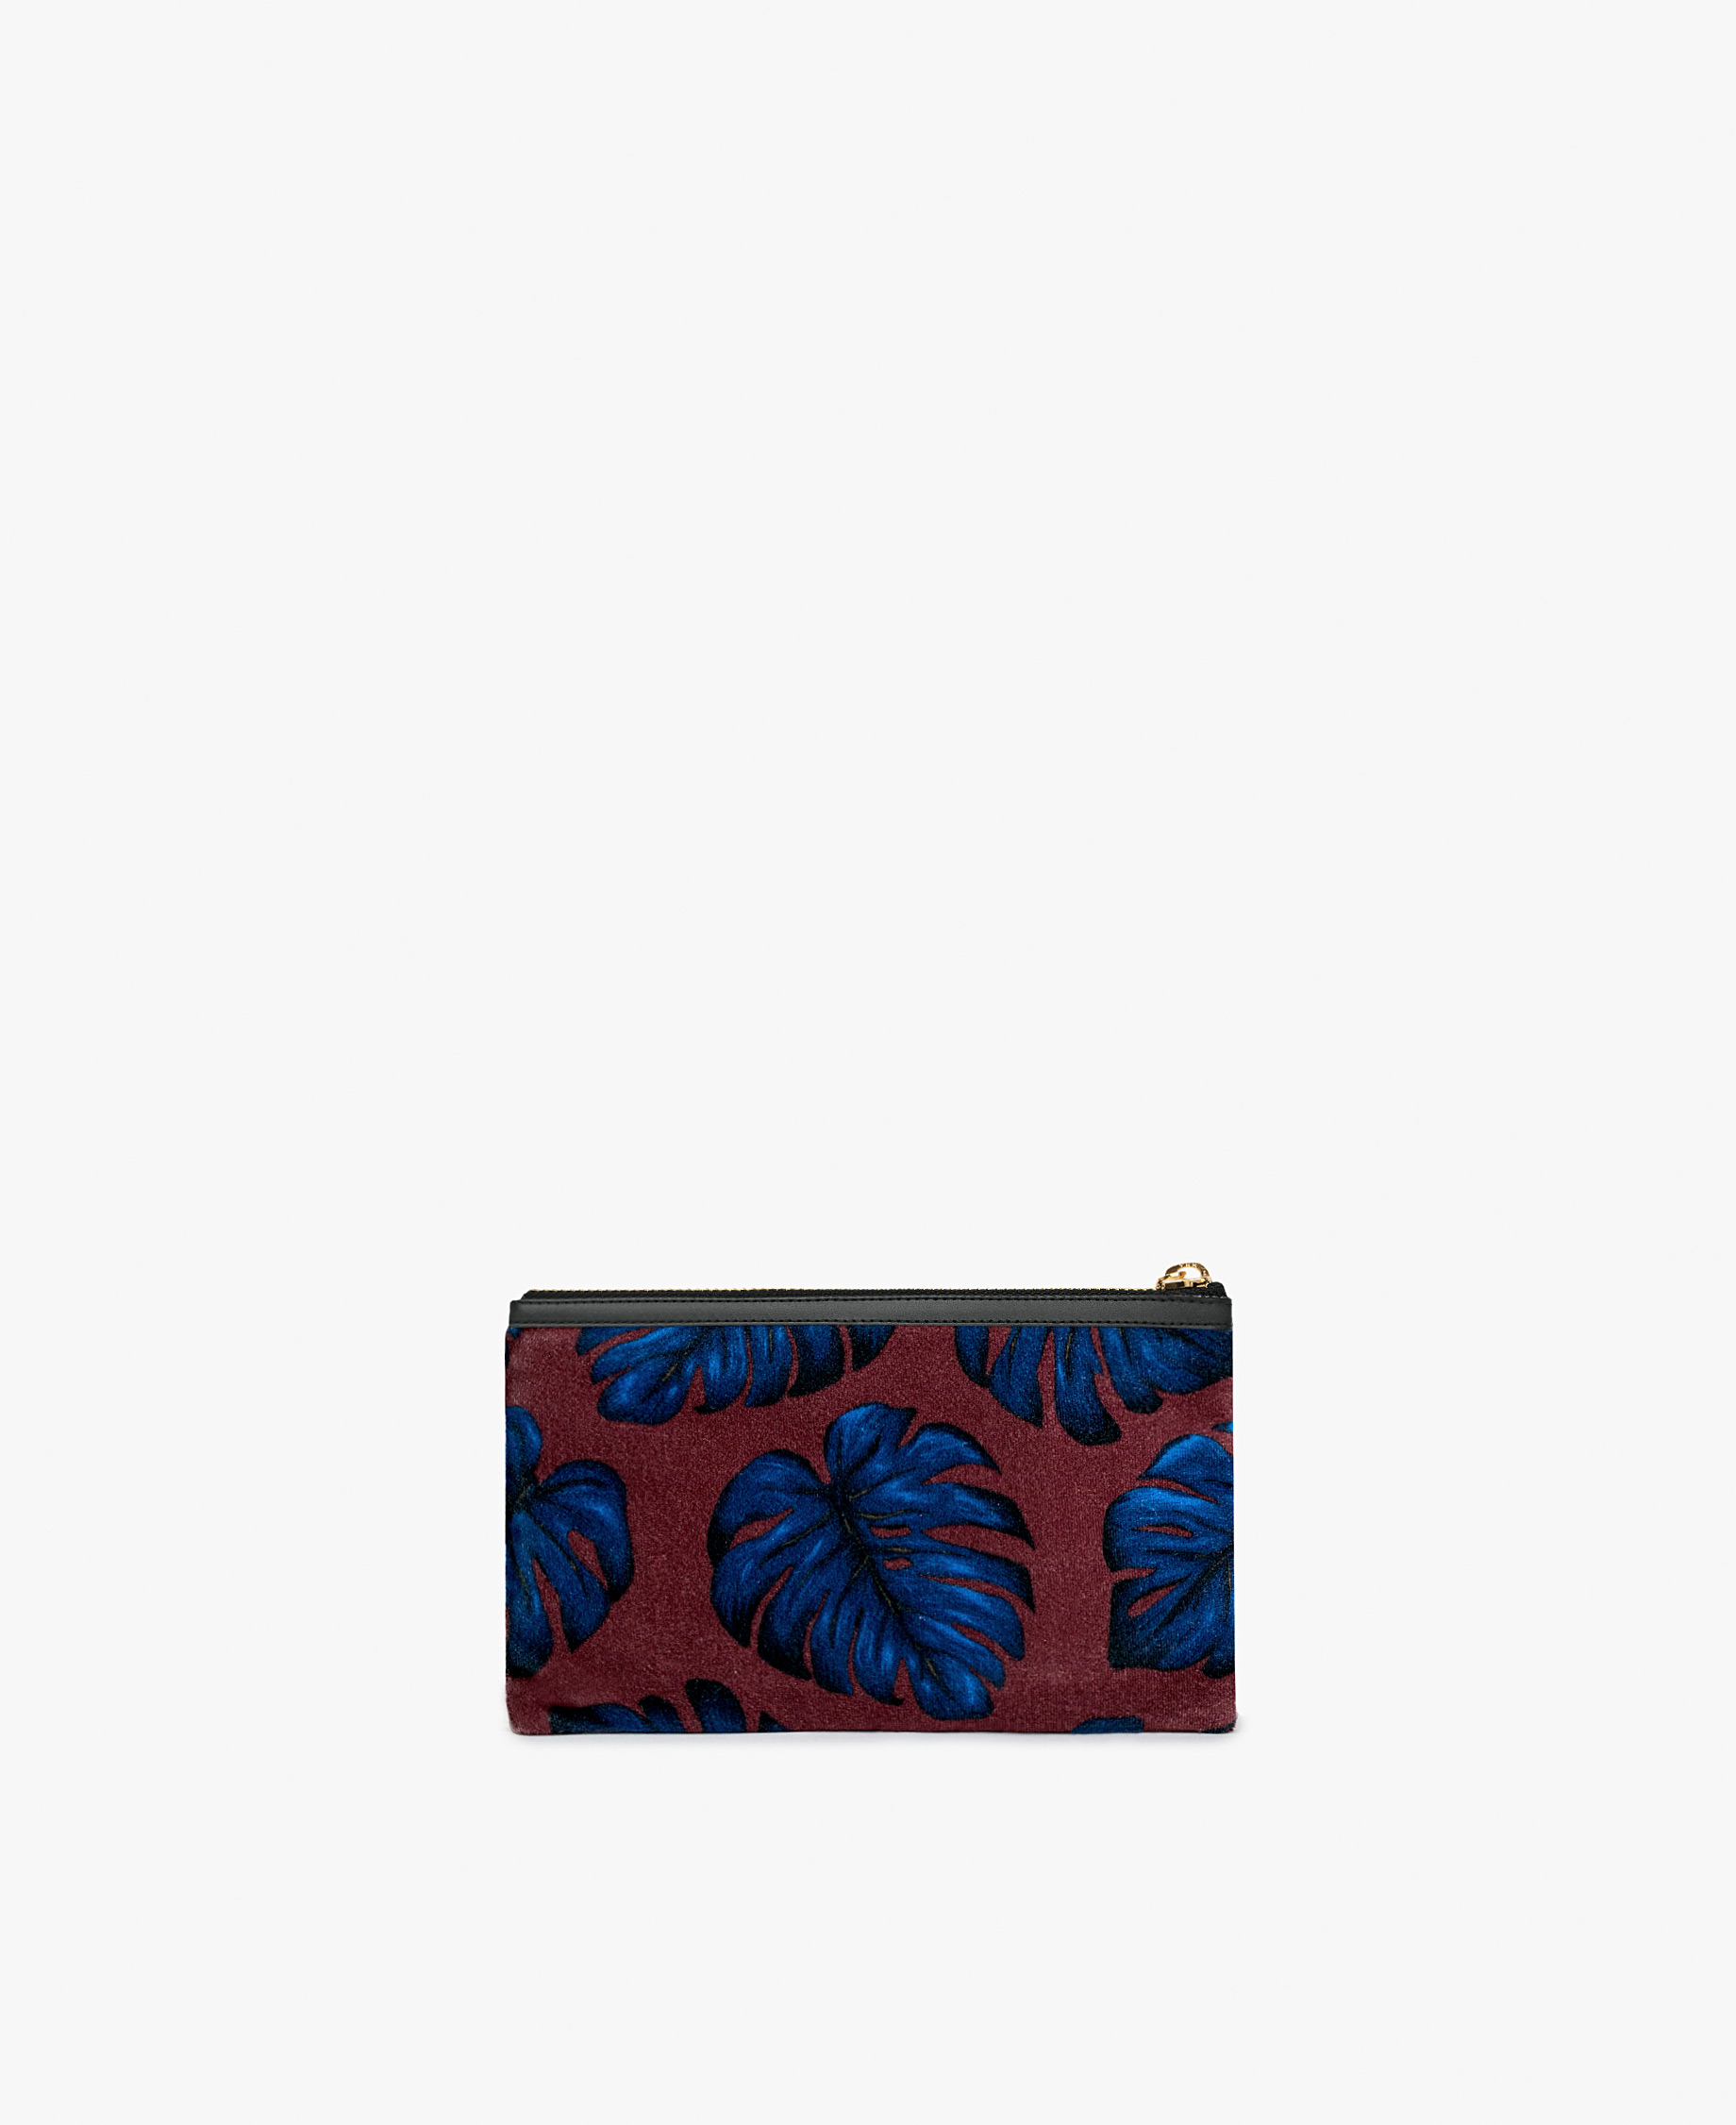 small velvet woman clutch